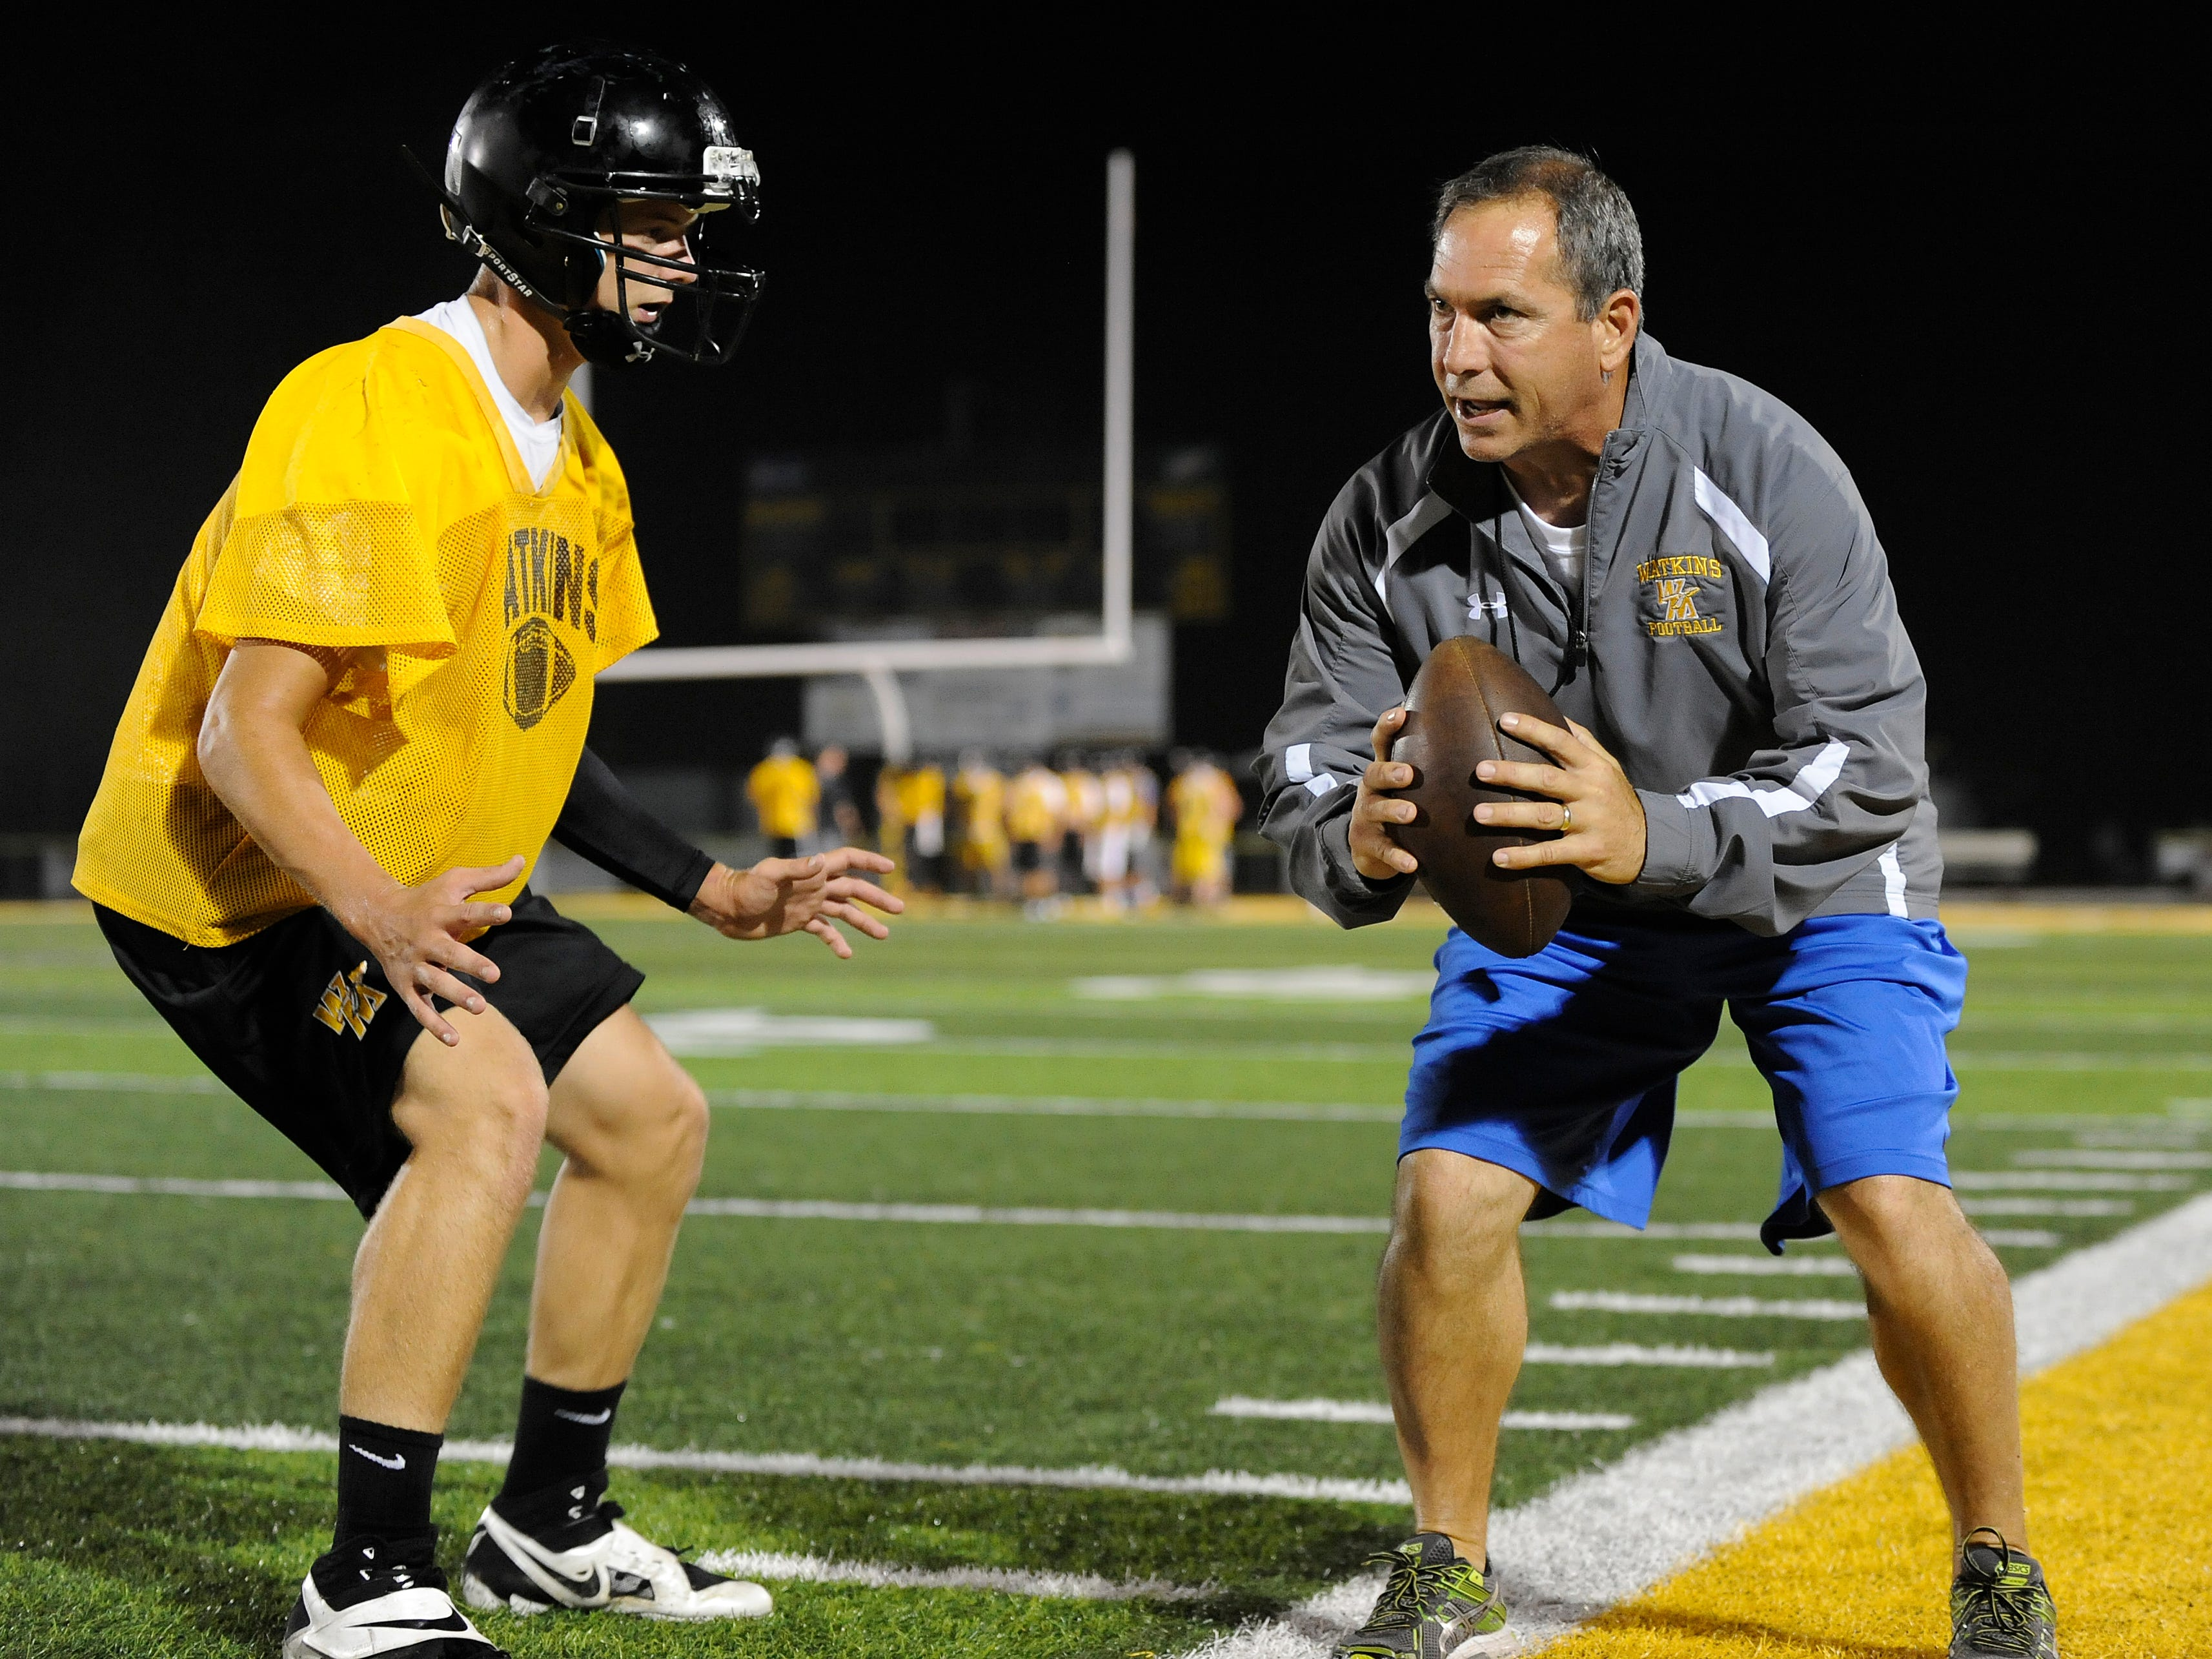 Watkins Memorial football coach Jeff Severino, right, runs Cole Nixon through a secondary drill during the Warriors' midnight practice this past August. Severino said the Warriors are operating as usual in advance of the upcoming vote on the critical renewal levy.